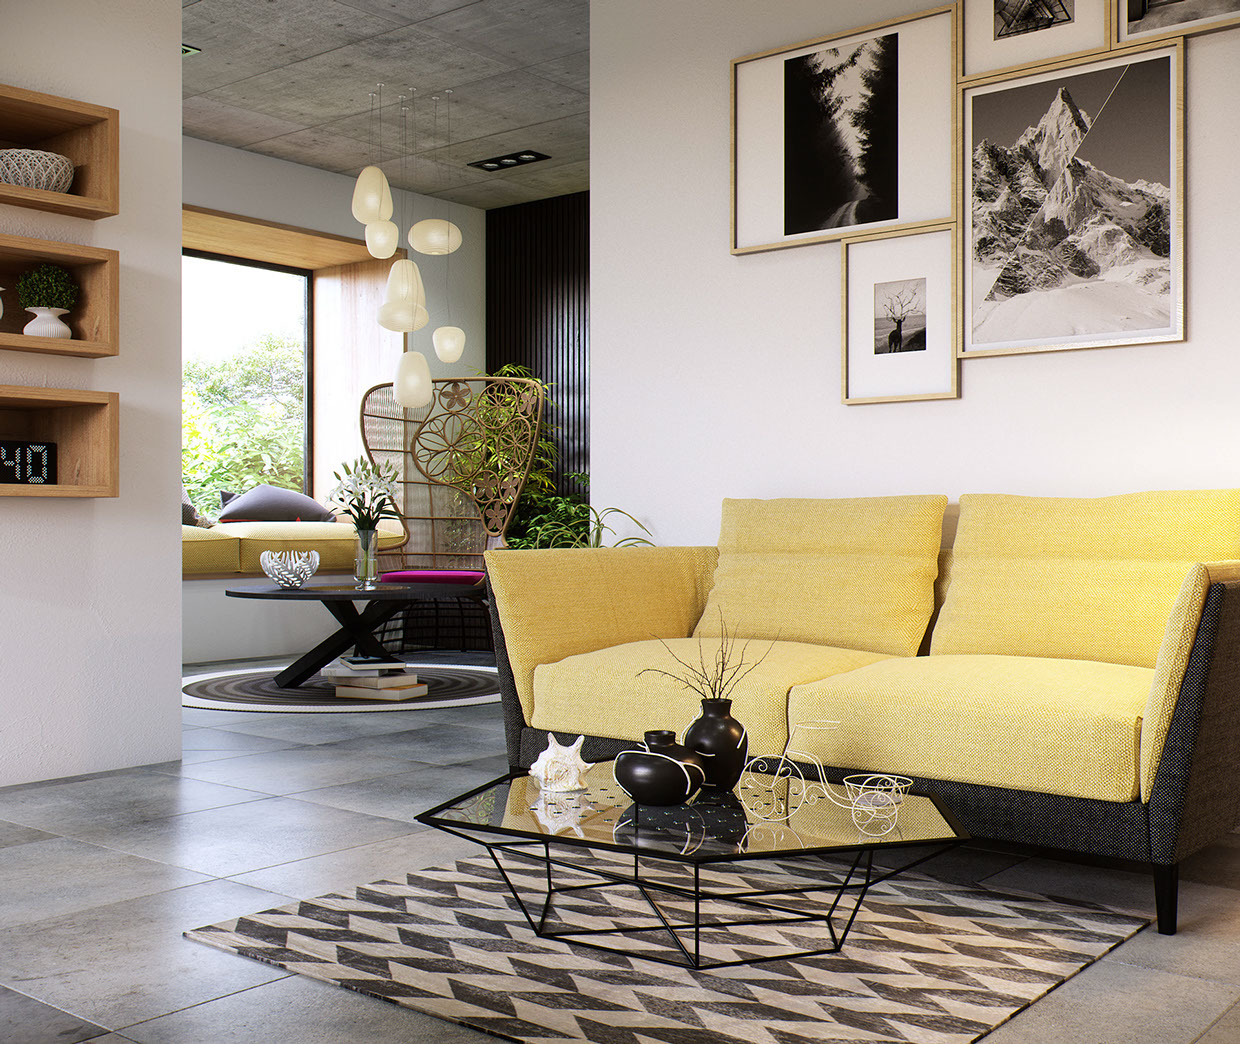 A yellow loveseat in an open living room